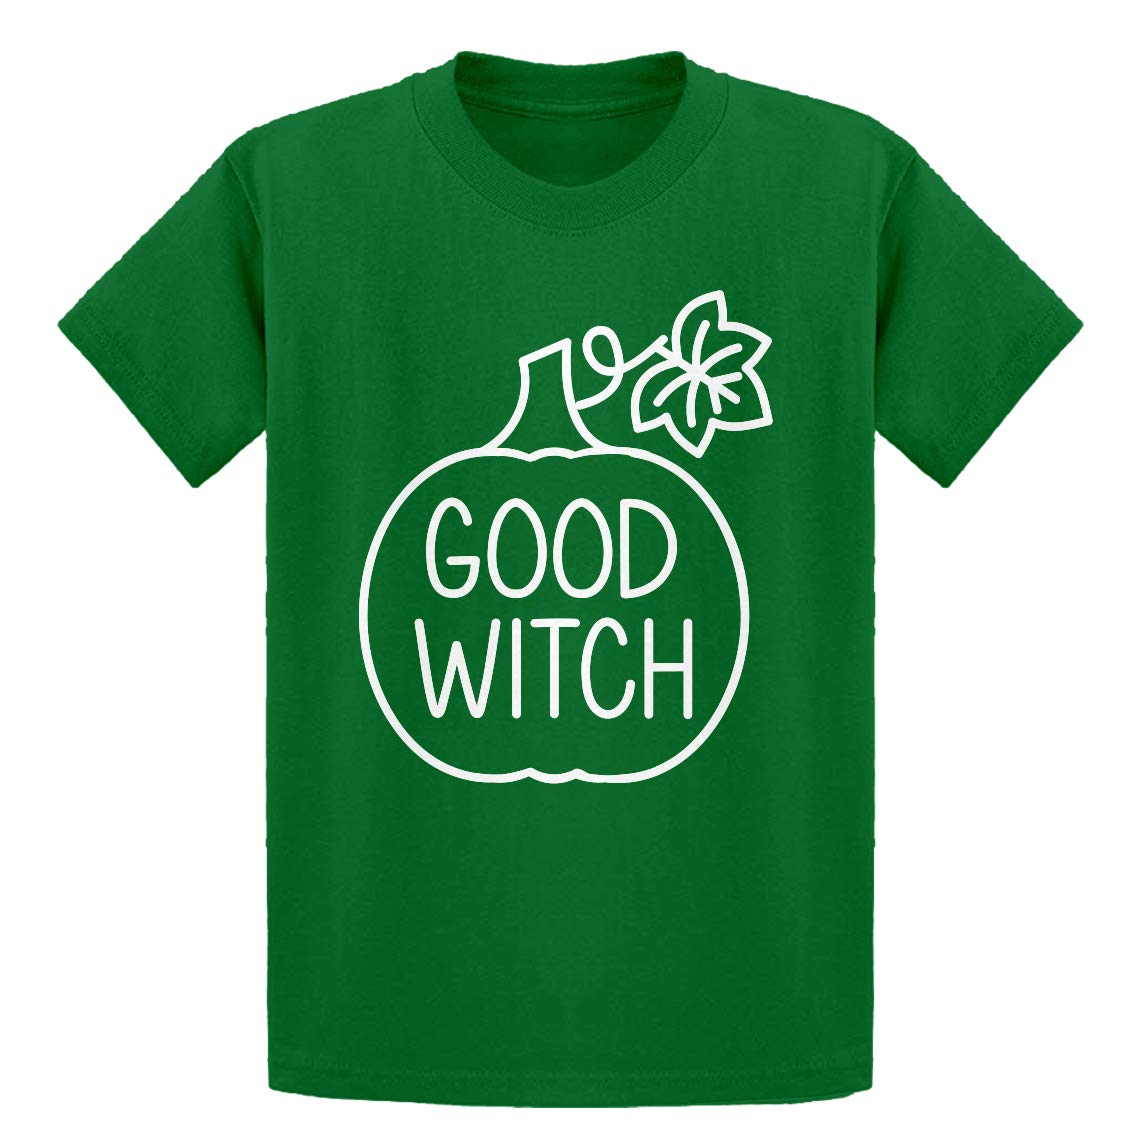 Indica Plateau Youth Good Witch Kids T-Shirt